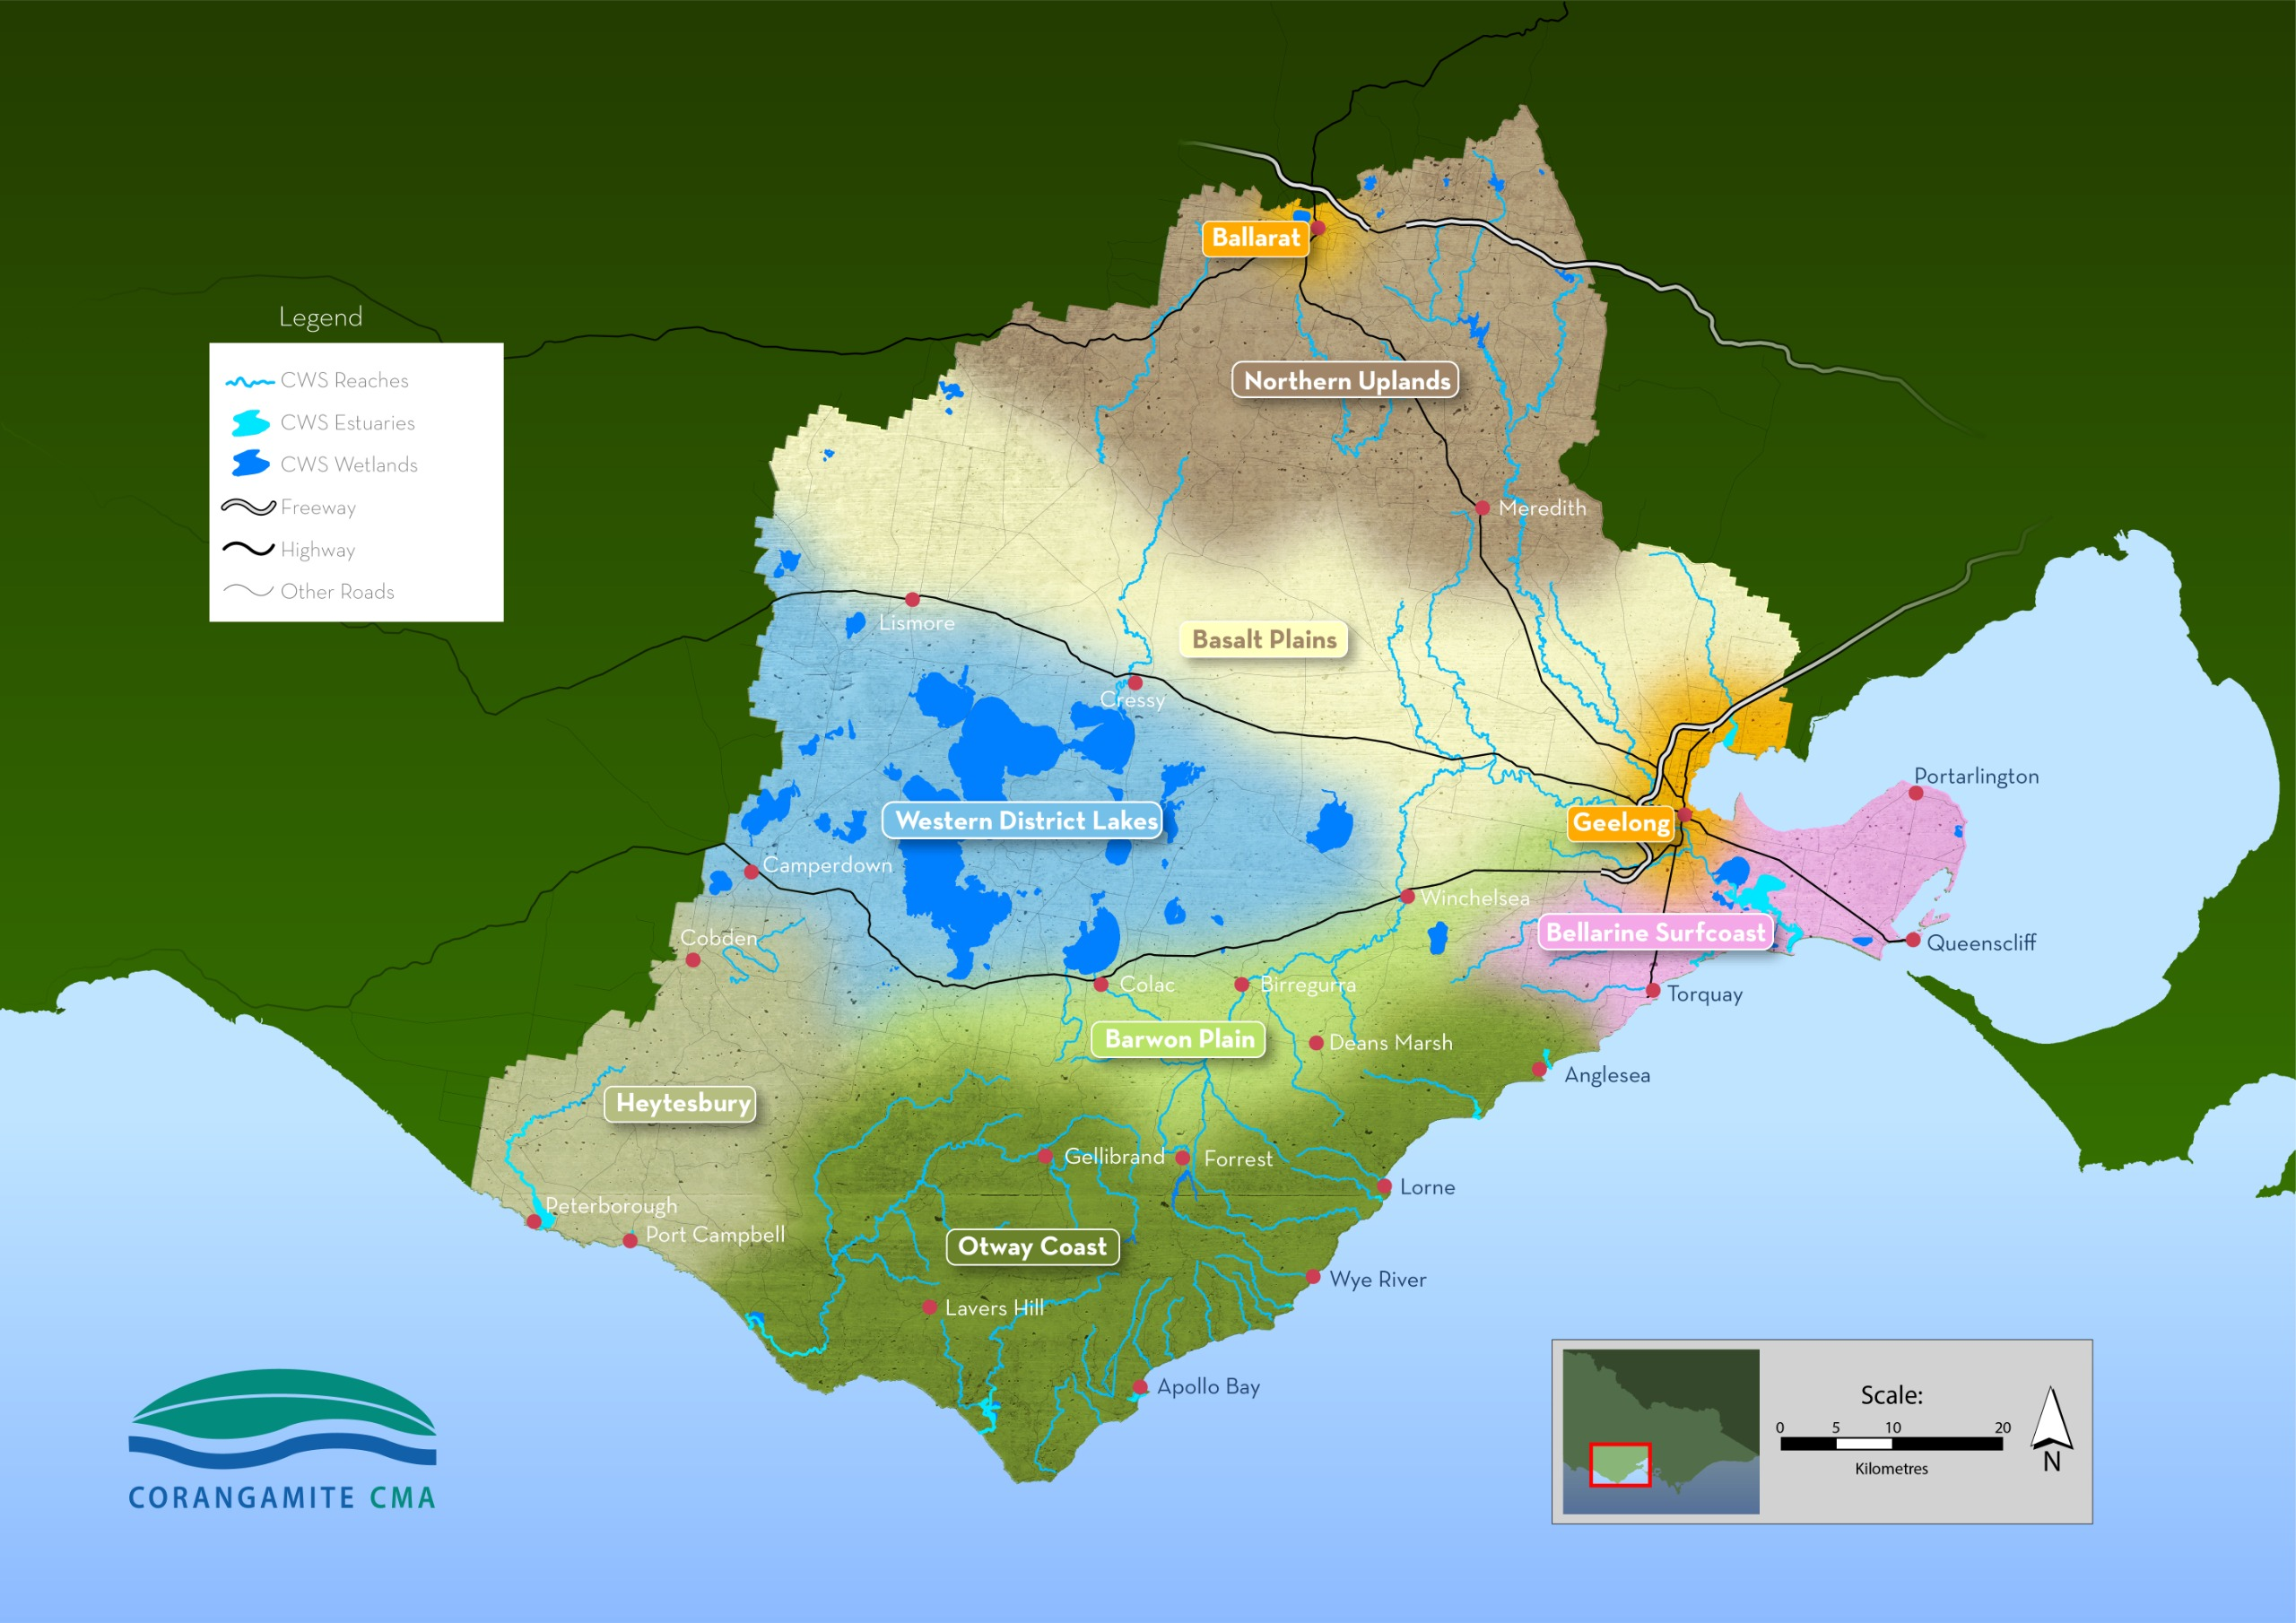 This is a map of the Corangamite region showing the nine landscape systems that make up the region